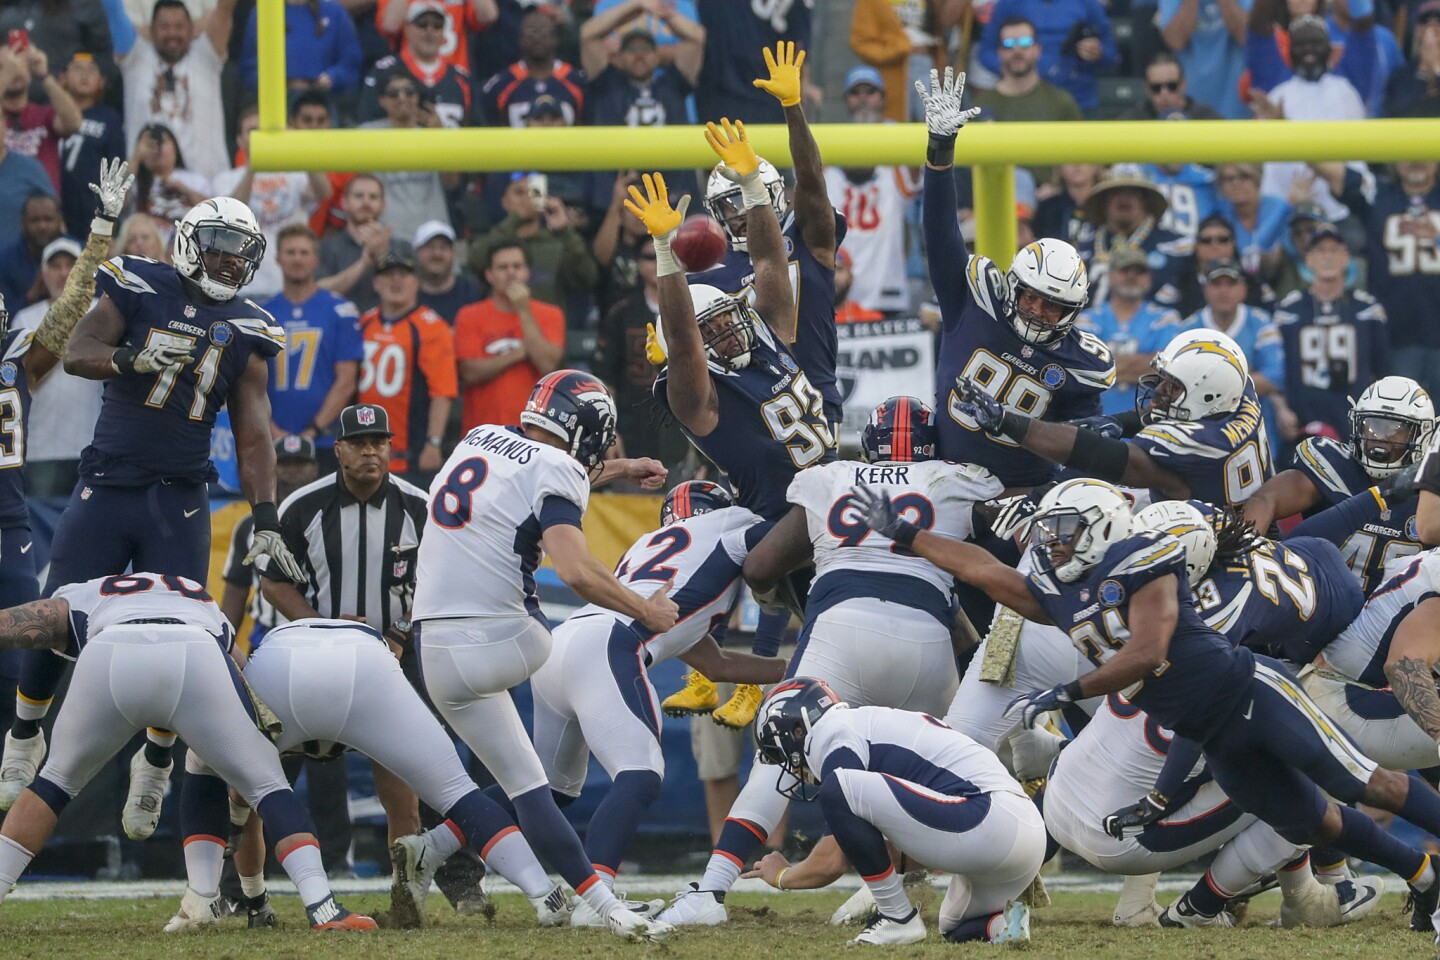 Denver Broncos kicker Brandon McManus kicks a 34-yard field goal to beat the Chargers 23-22 at Stubhub Center.